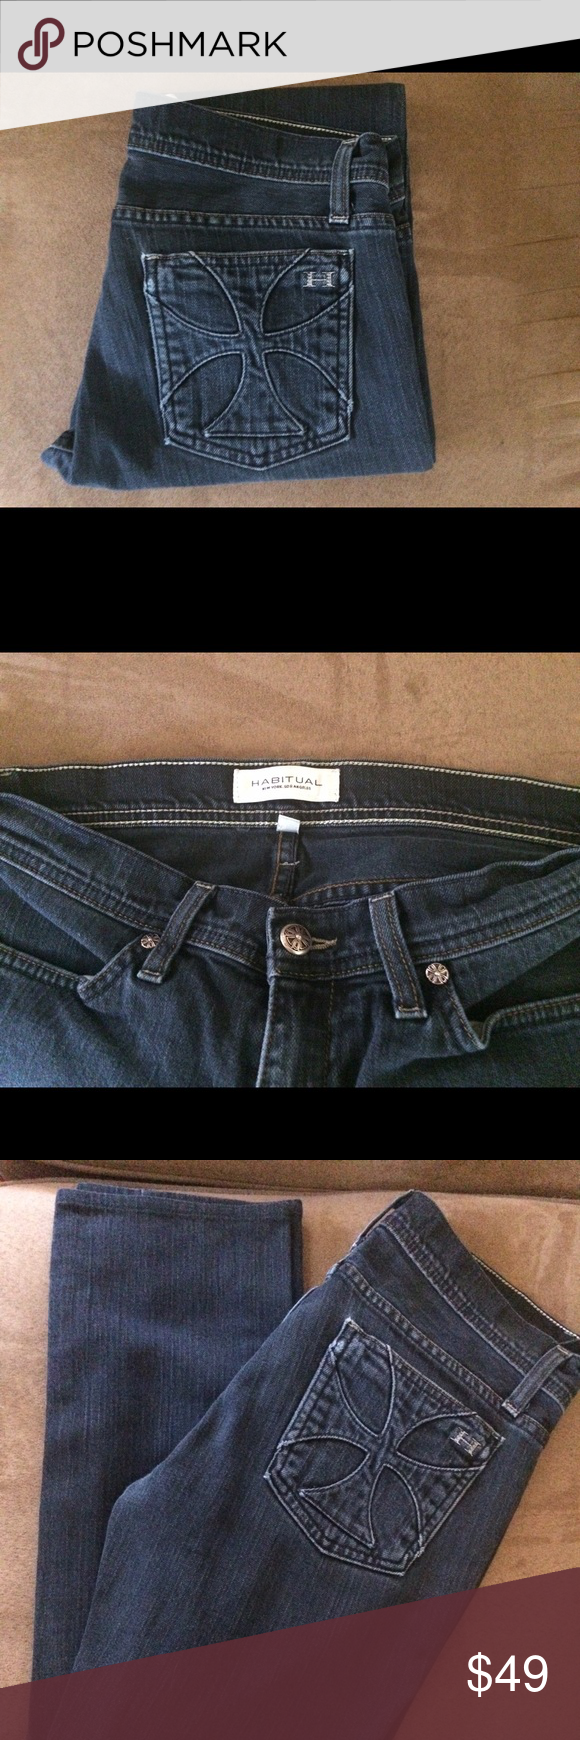 """Habitual Caroline jean (blue denim) size 27 Habitual Caroline straight leg jean (blue denim) size 27 inseam 29 1/2"""" rise 7"""" and Leg opening 6"""". Normal user wear and fade. No wear on hems. No tears holes or stains. Overall in good used condition Habitual Jeans Straight Leg"""